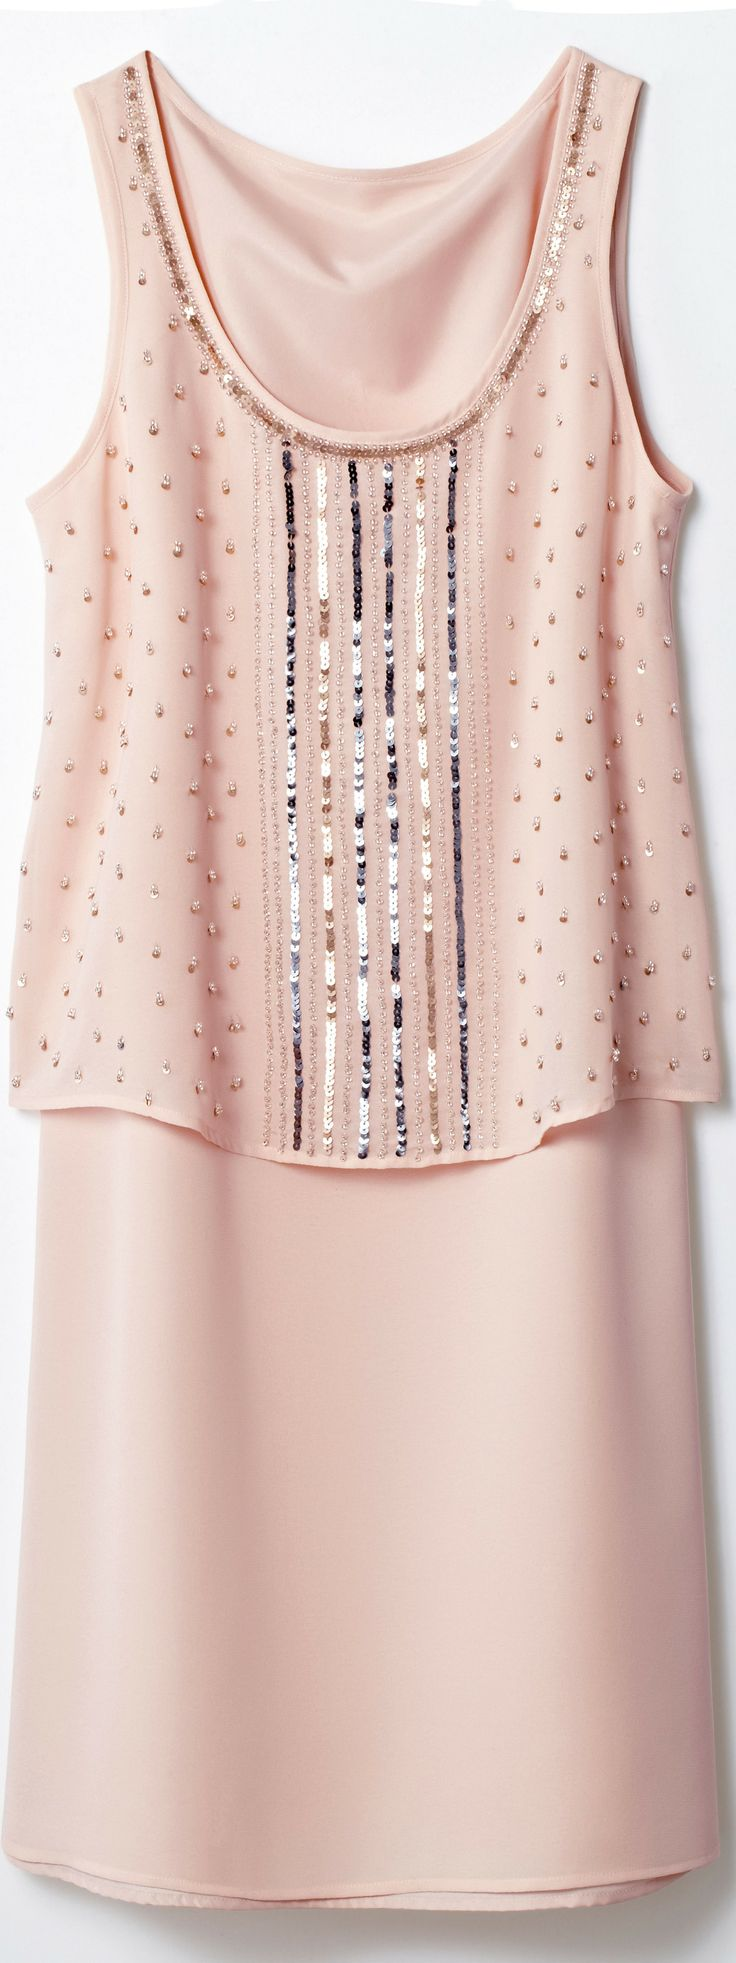 """You can wear this blingy dress from La Redoute for smart casual. """"What is Smart Casual for Women on Cruises?"""" - (article) - http://boomerinas.com/2014/01/31/what-is-smart-casual-for-women-on-cruises/"""